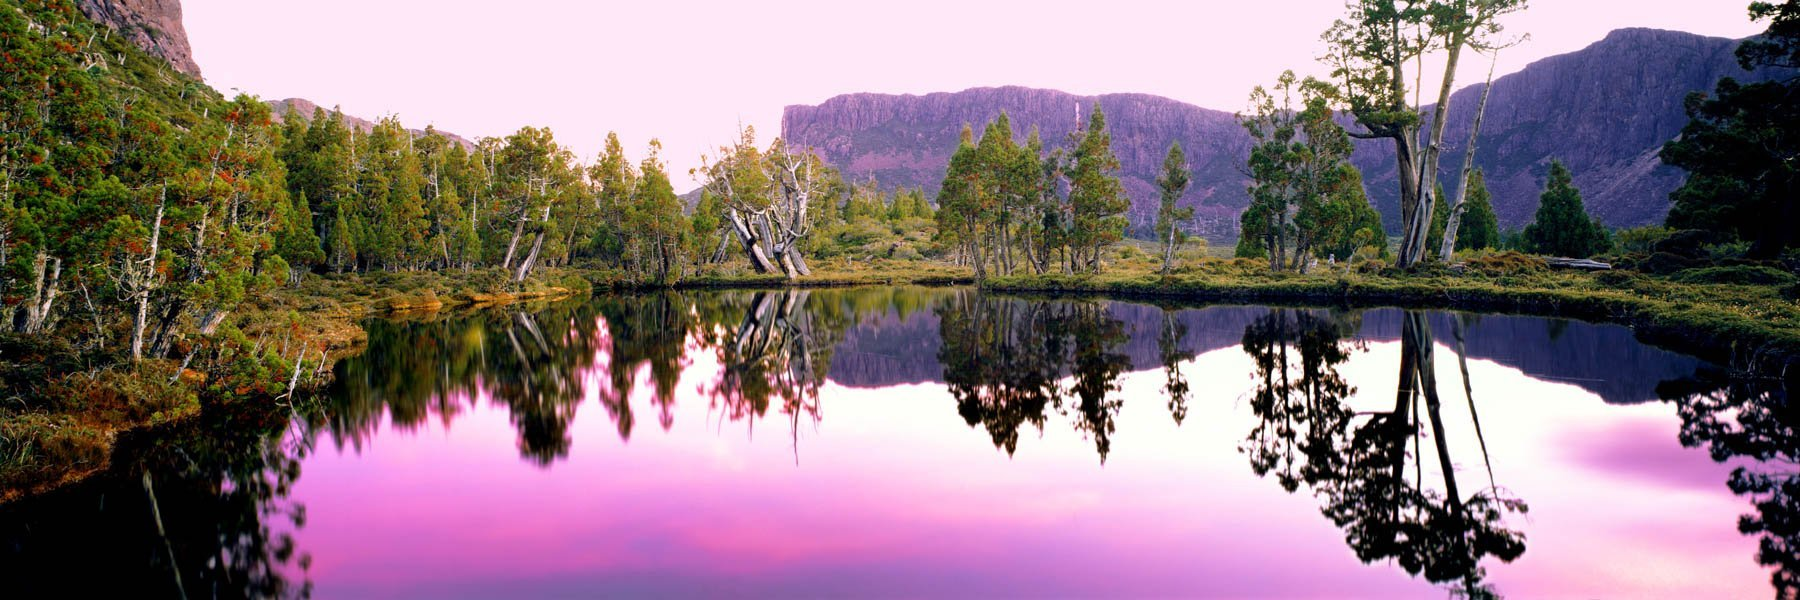 Sunset over a mountain lake, Walls of Jerusalem National Park, Tasmania, Australia.